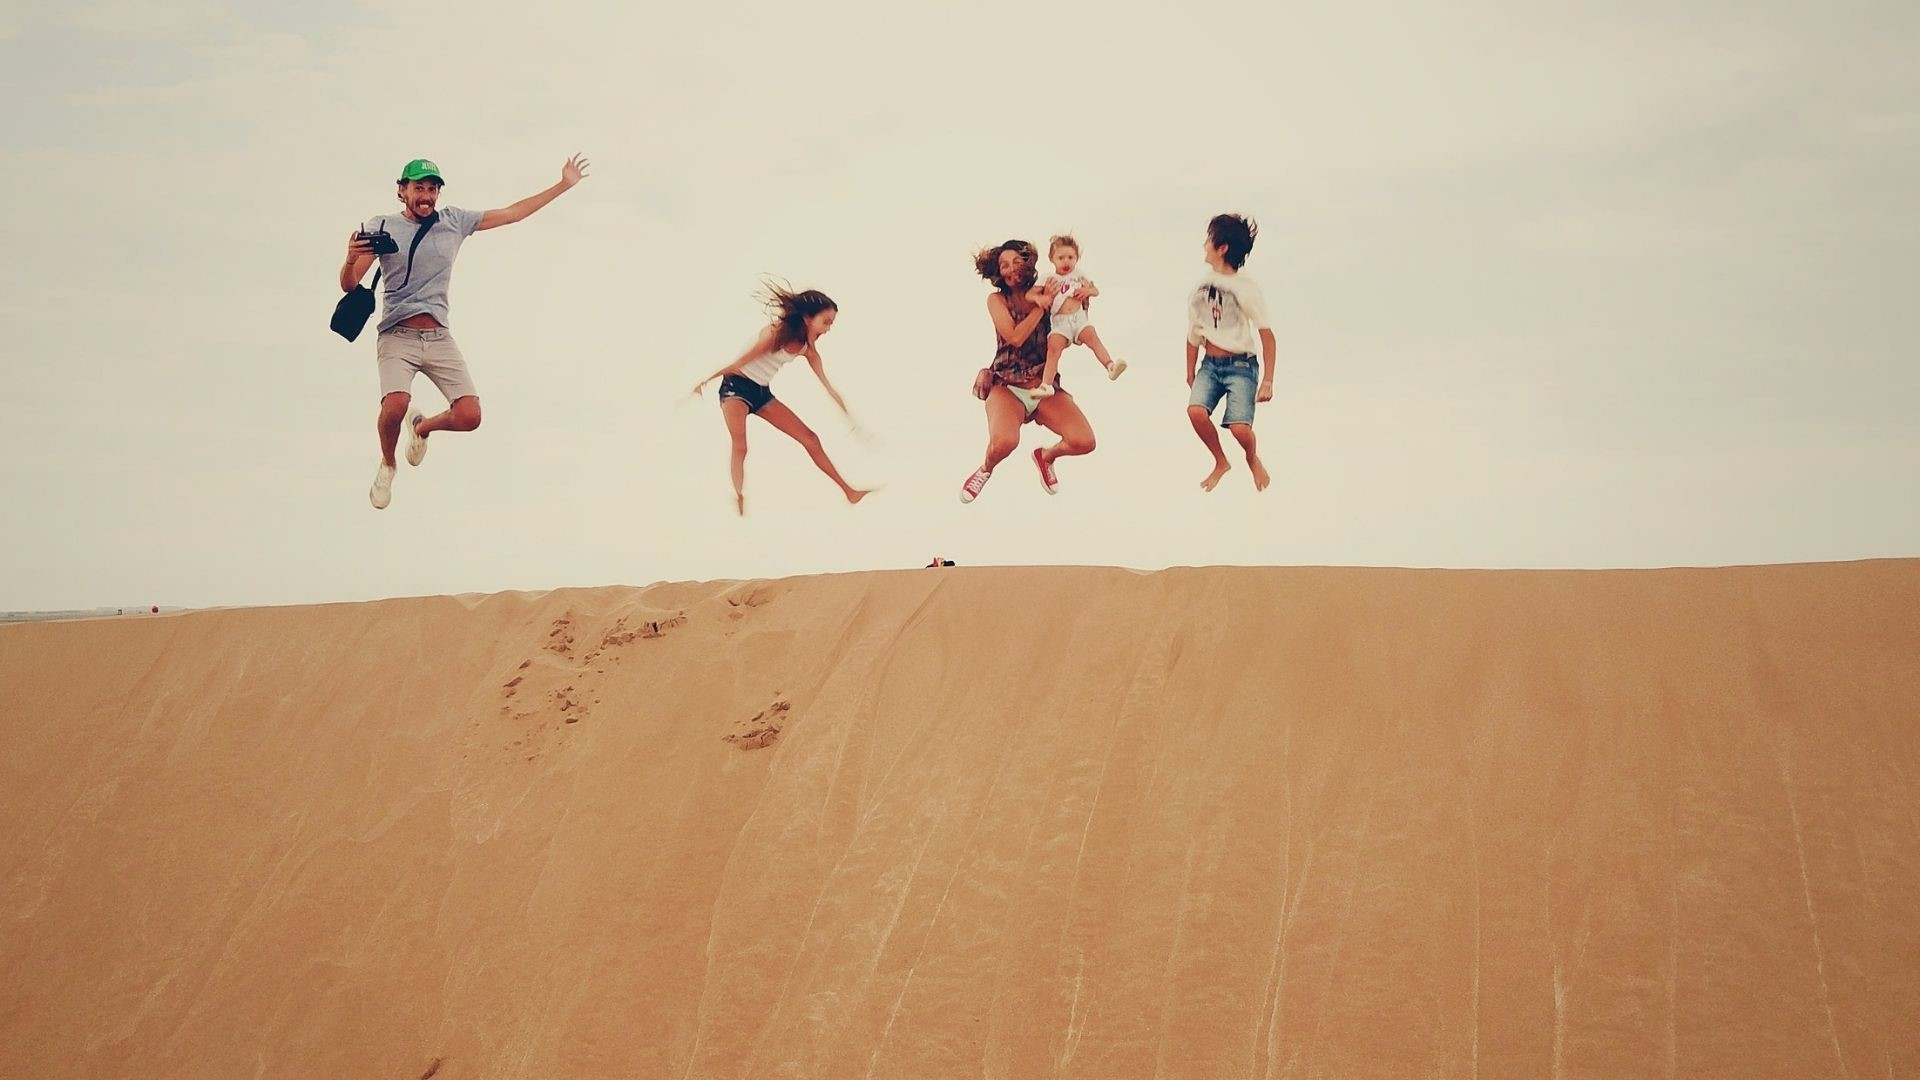 A family on top of a sand dune, jumping in the air.